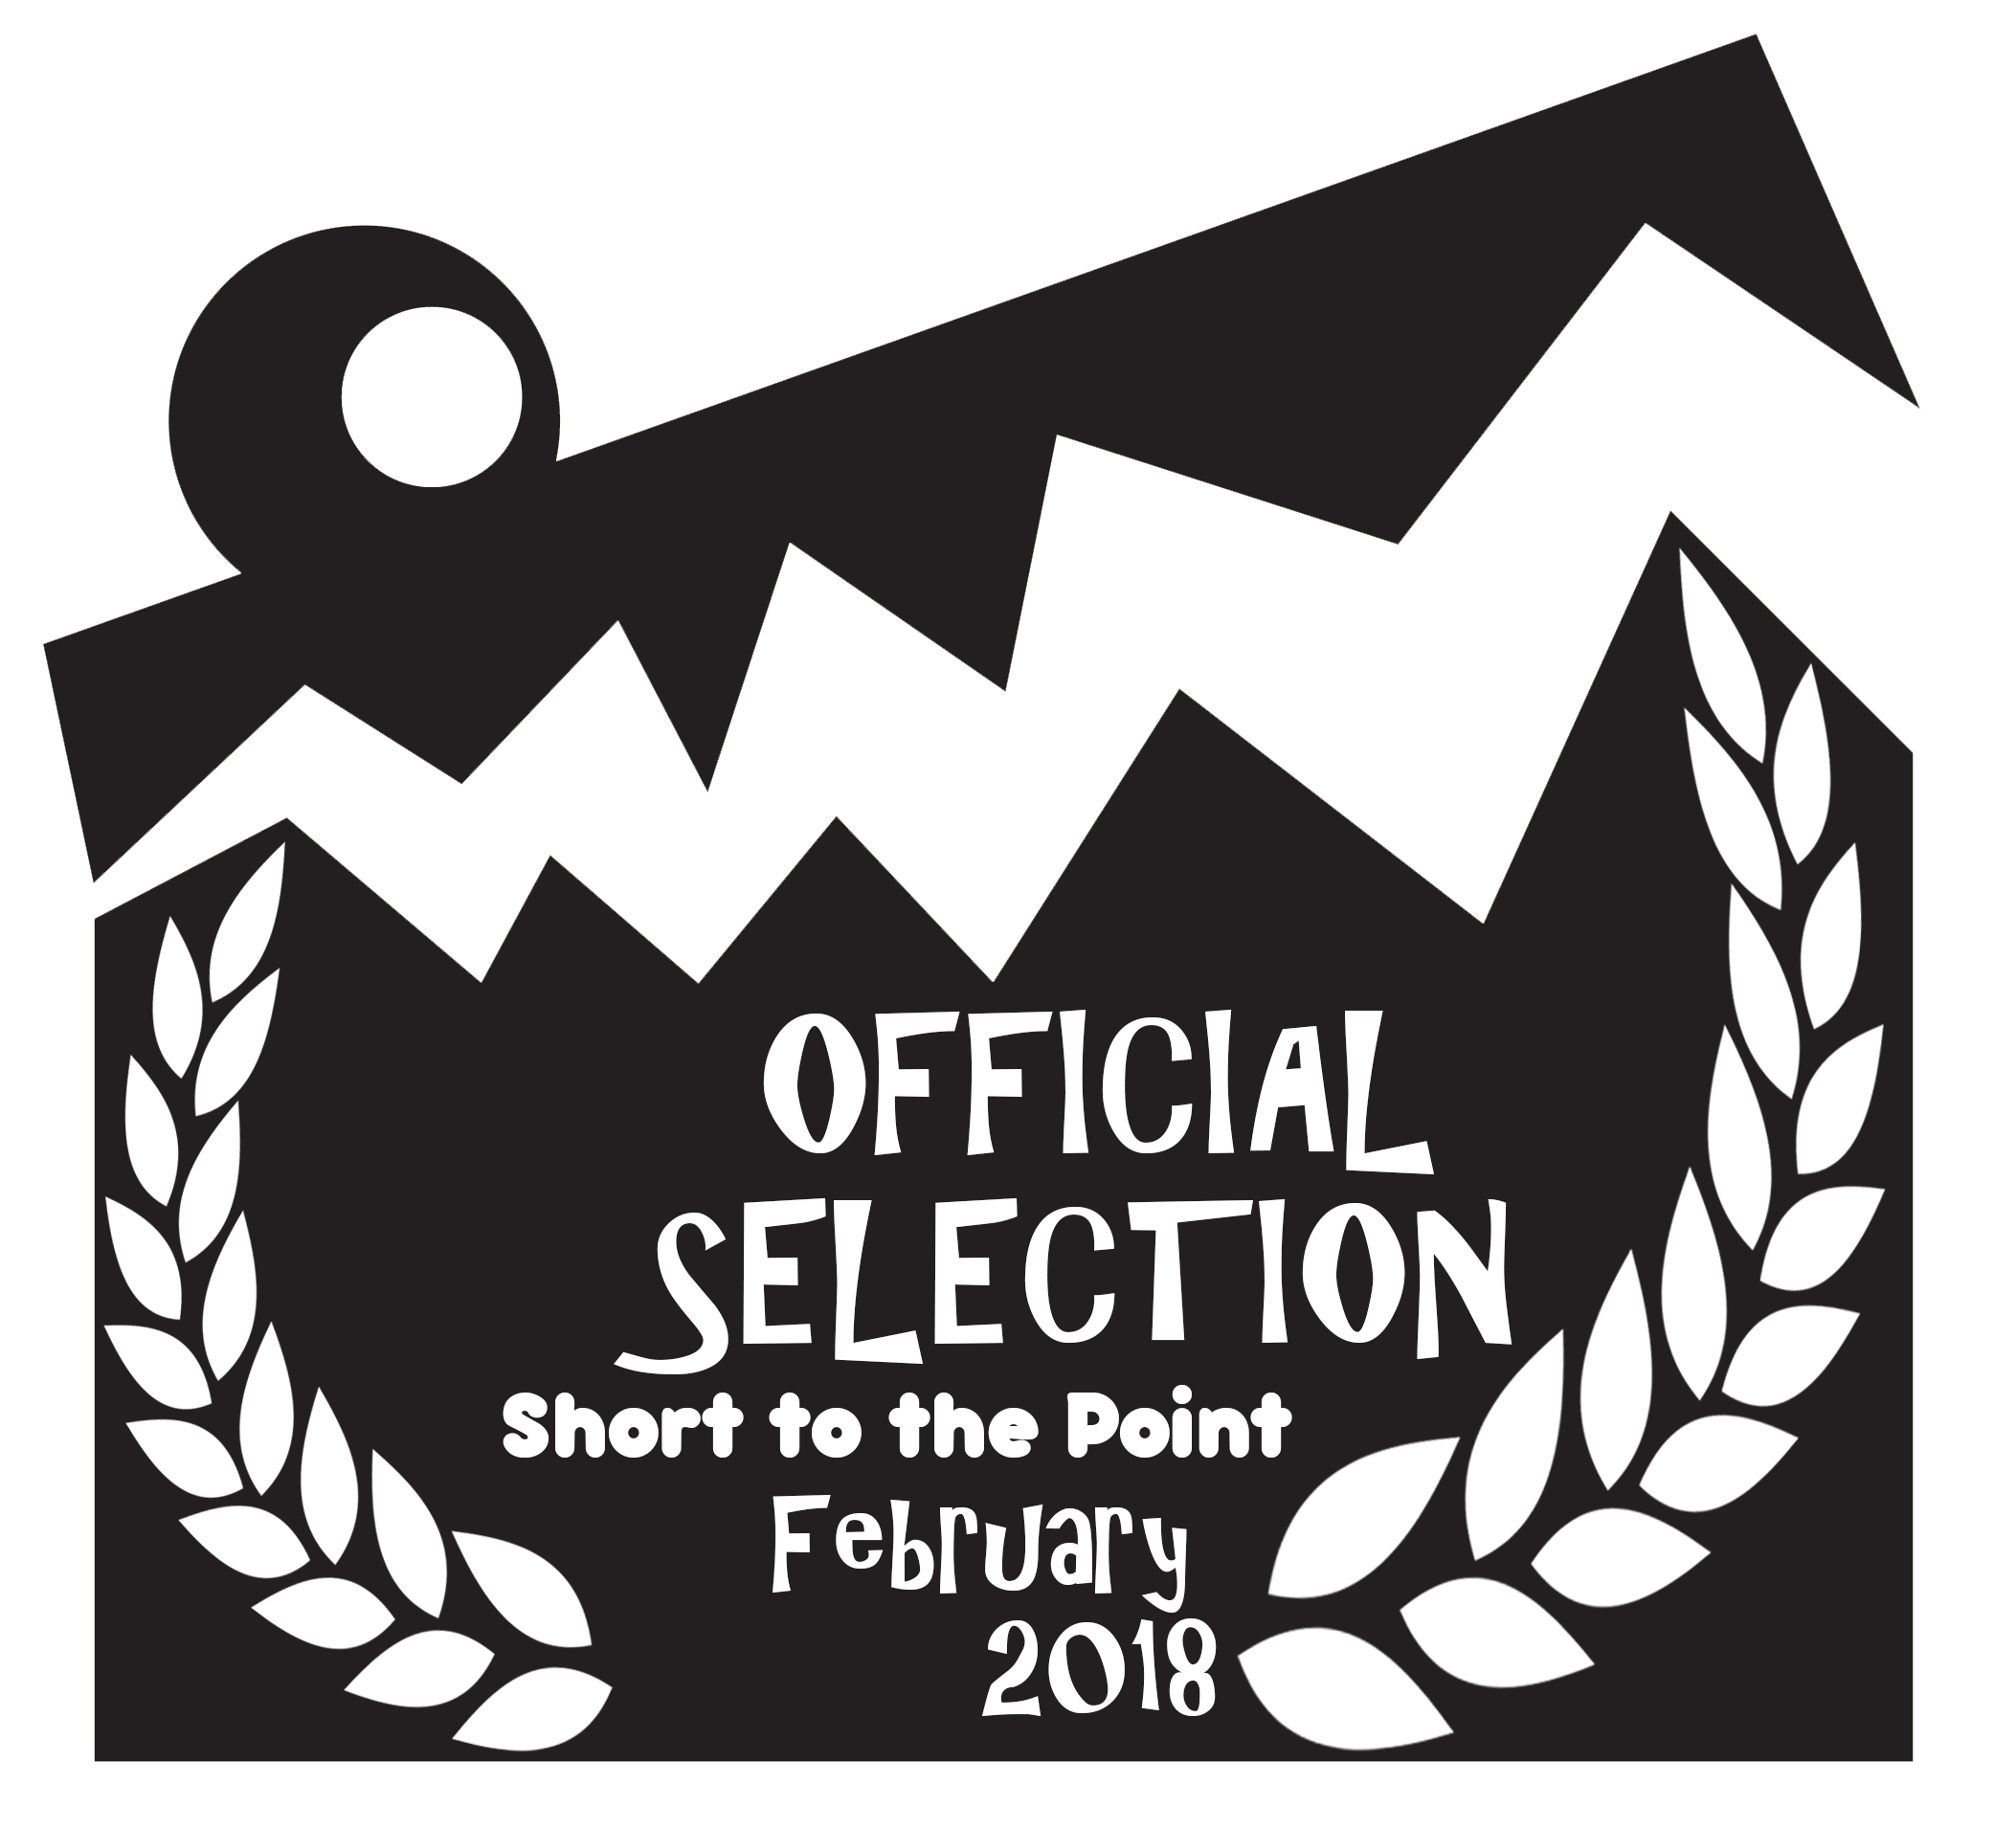 STTP OFFICIAL SELECTION Laurel - February 2018 - Black Crocodile.png